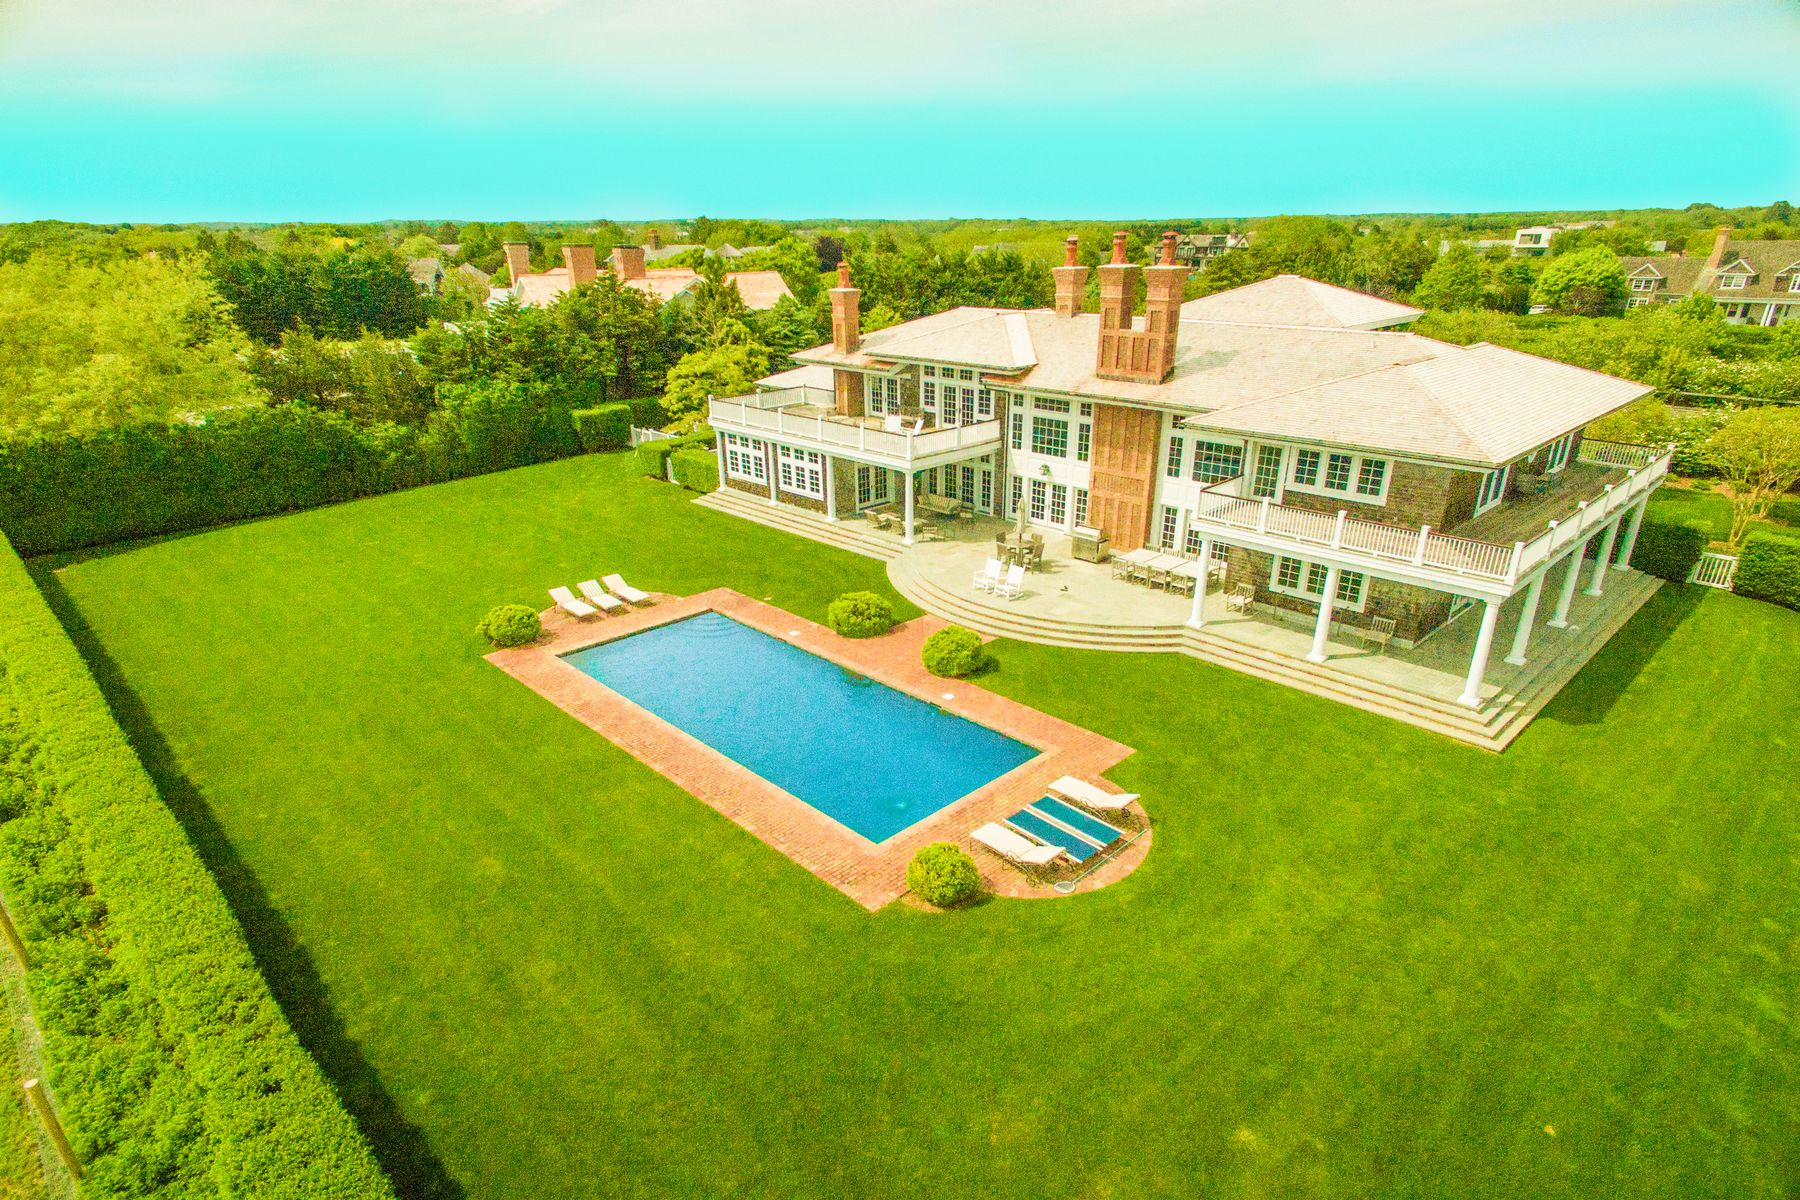 Single Family Home for Sale at SAGAPONACK OCEAN VIEWS WITH TENNIS 19 Sagg Pond Court Sagaponack, New York 11962 United States